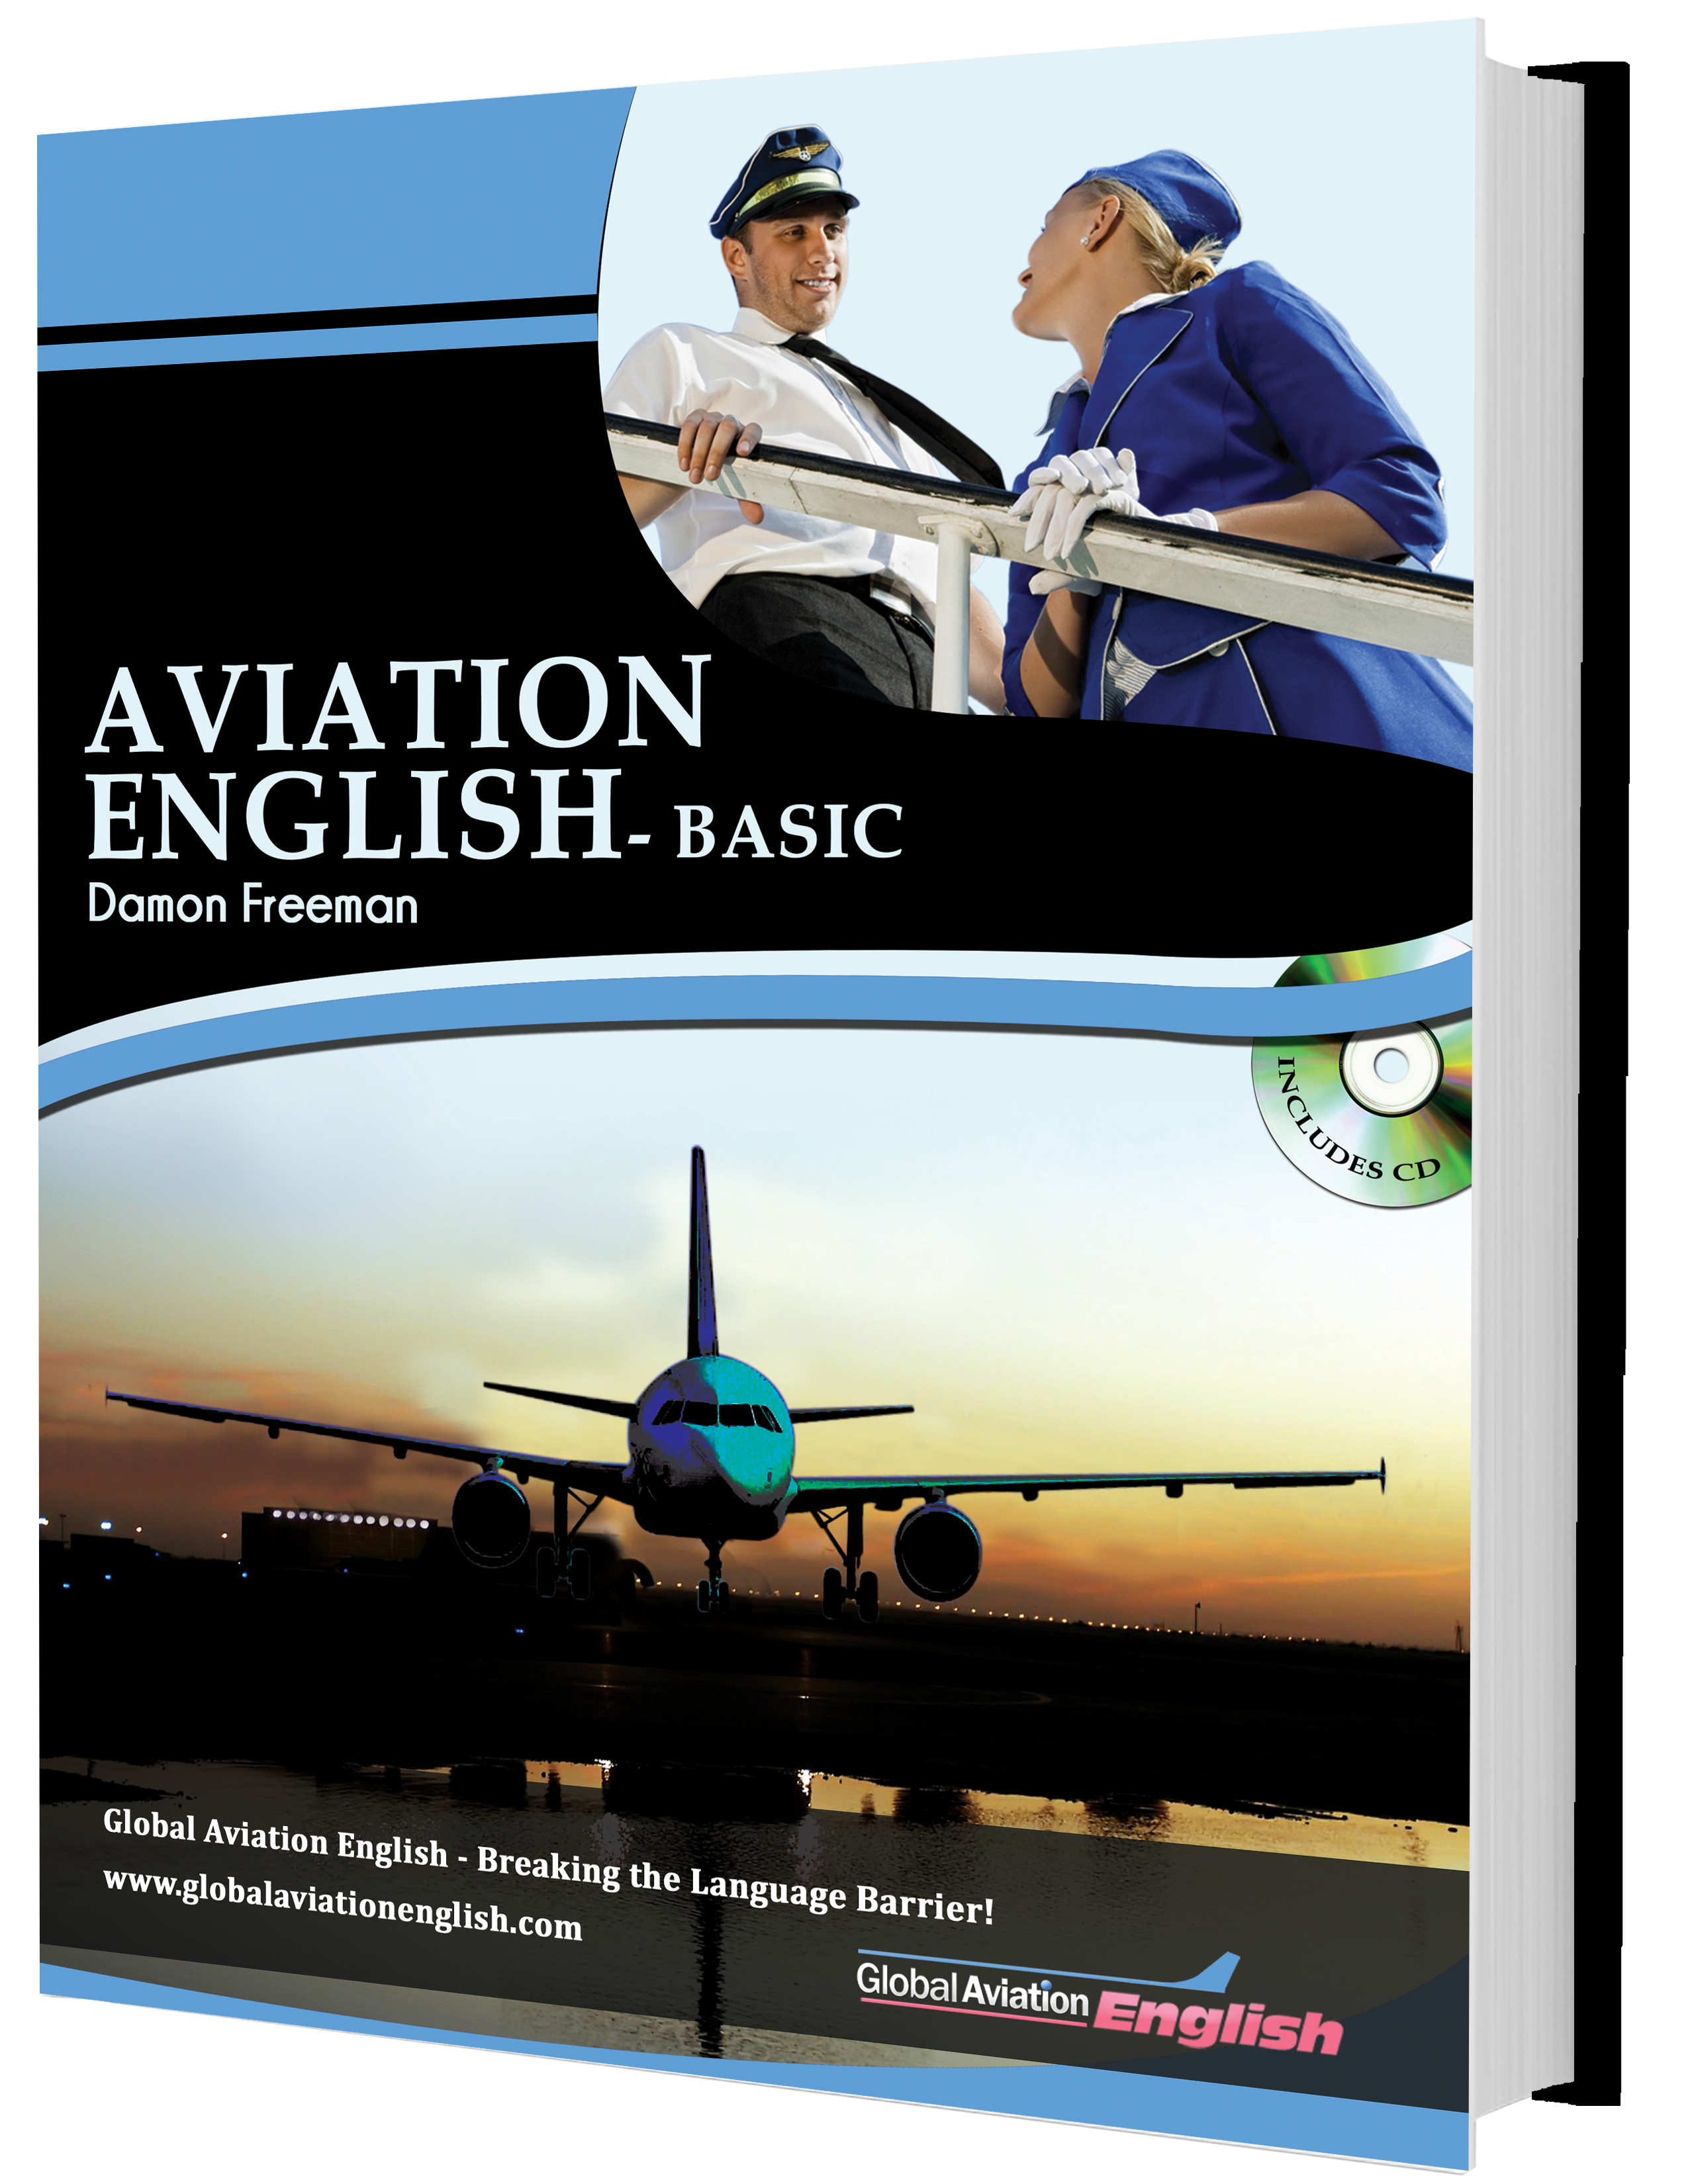 Aviation hard subjects in college